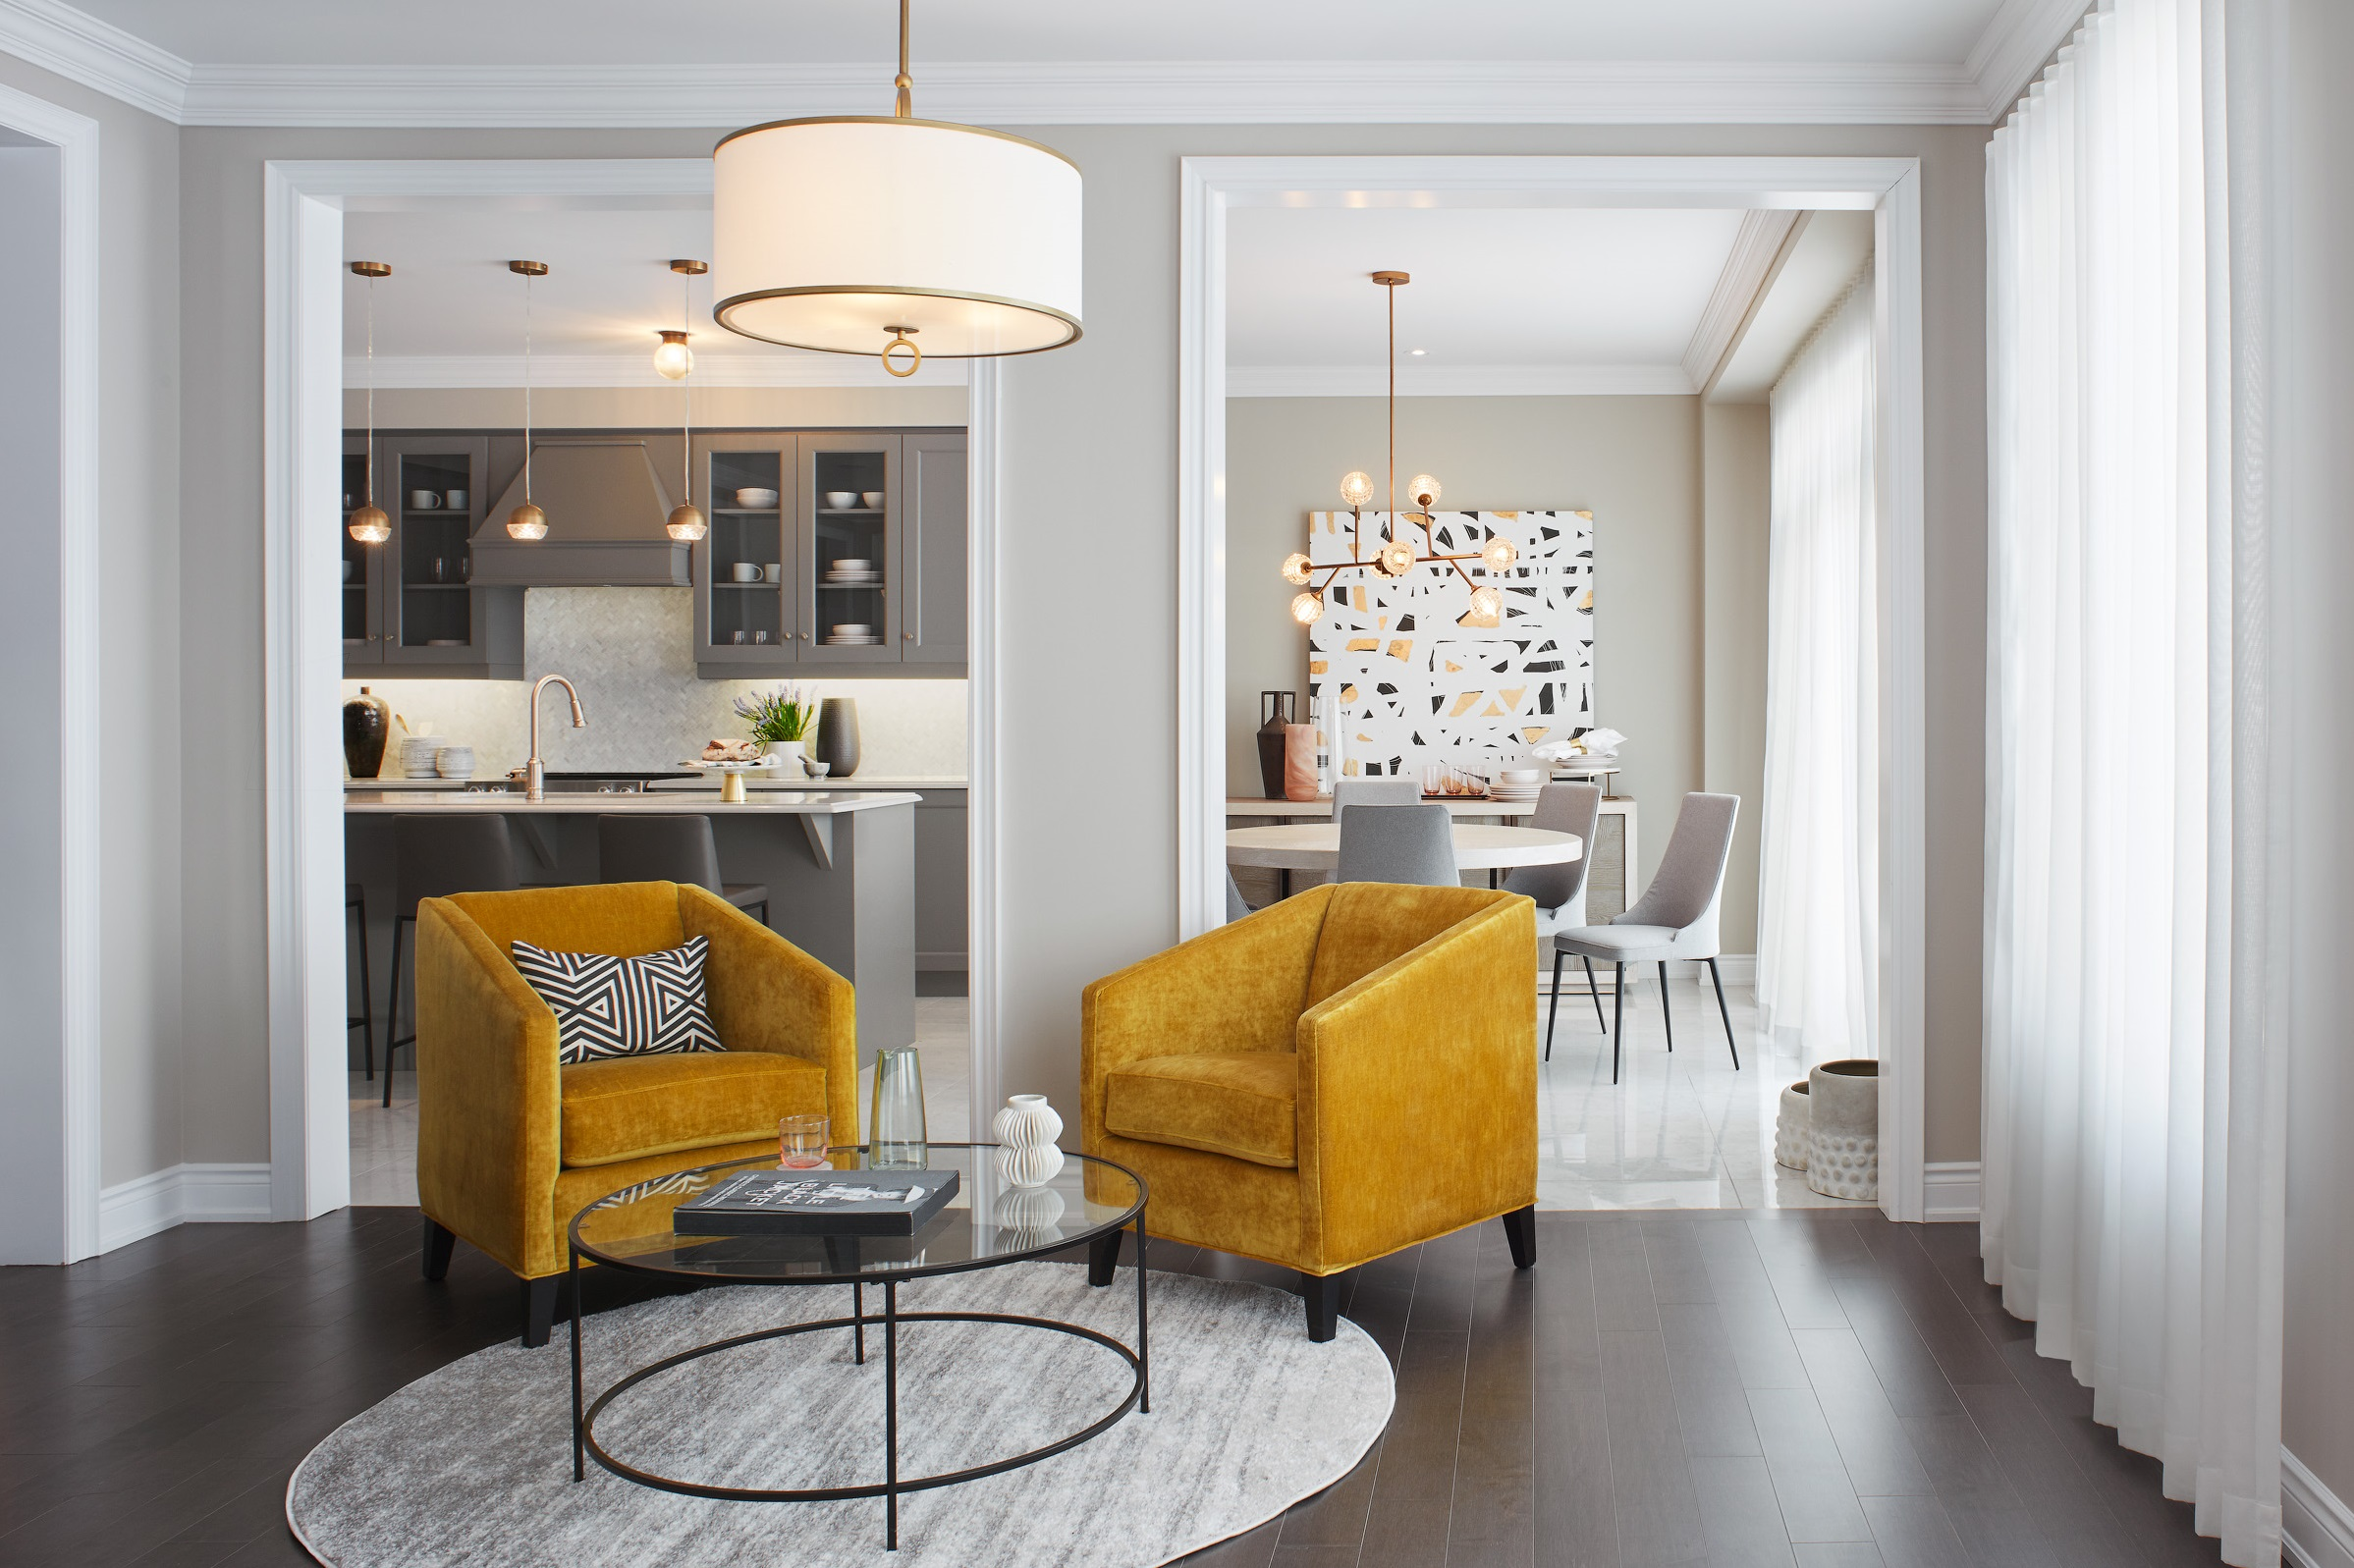 Manor Estate living room with bright yellow armchairs, dark wood floors, and round rug